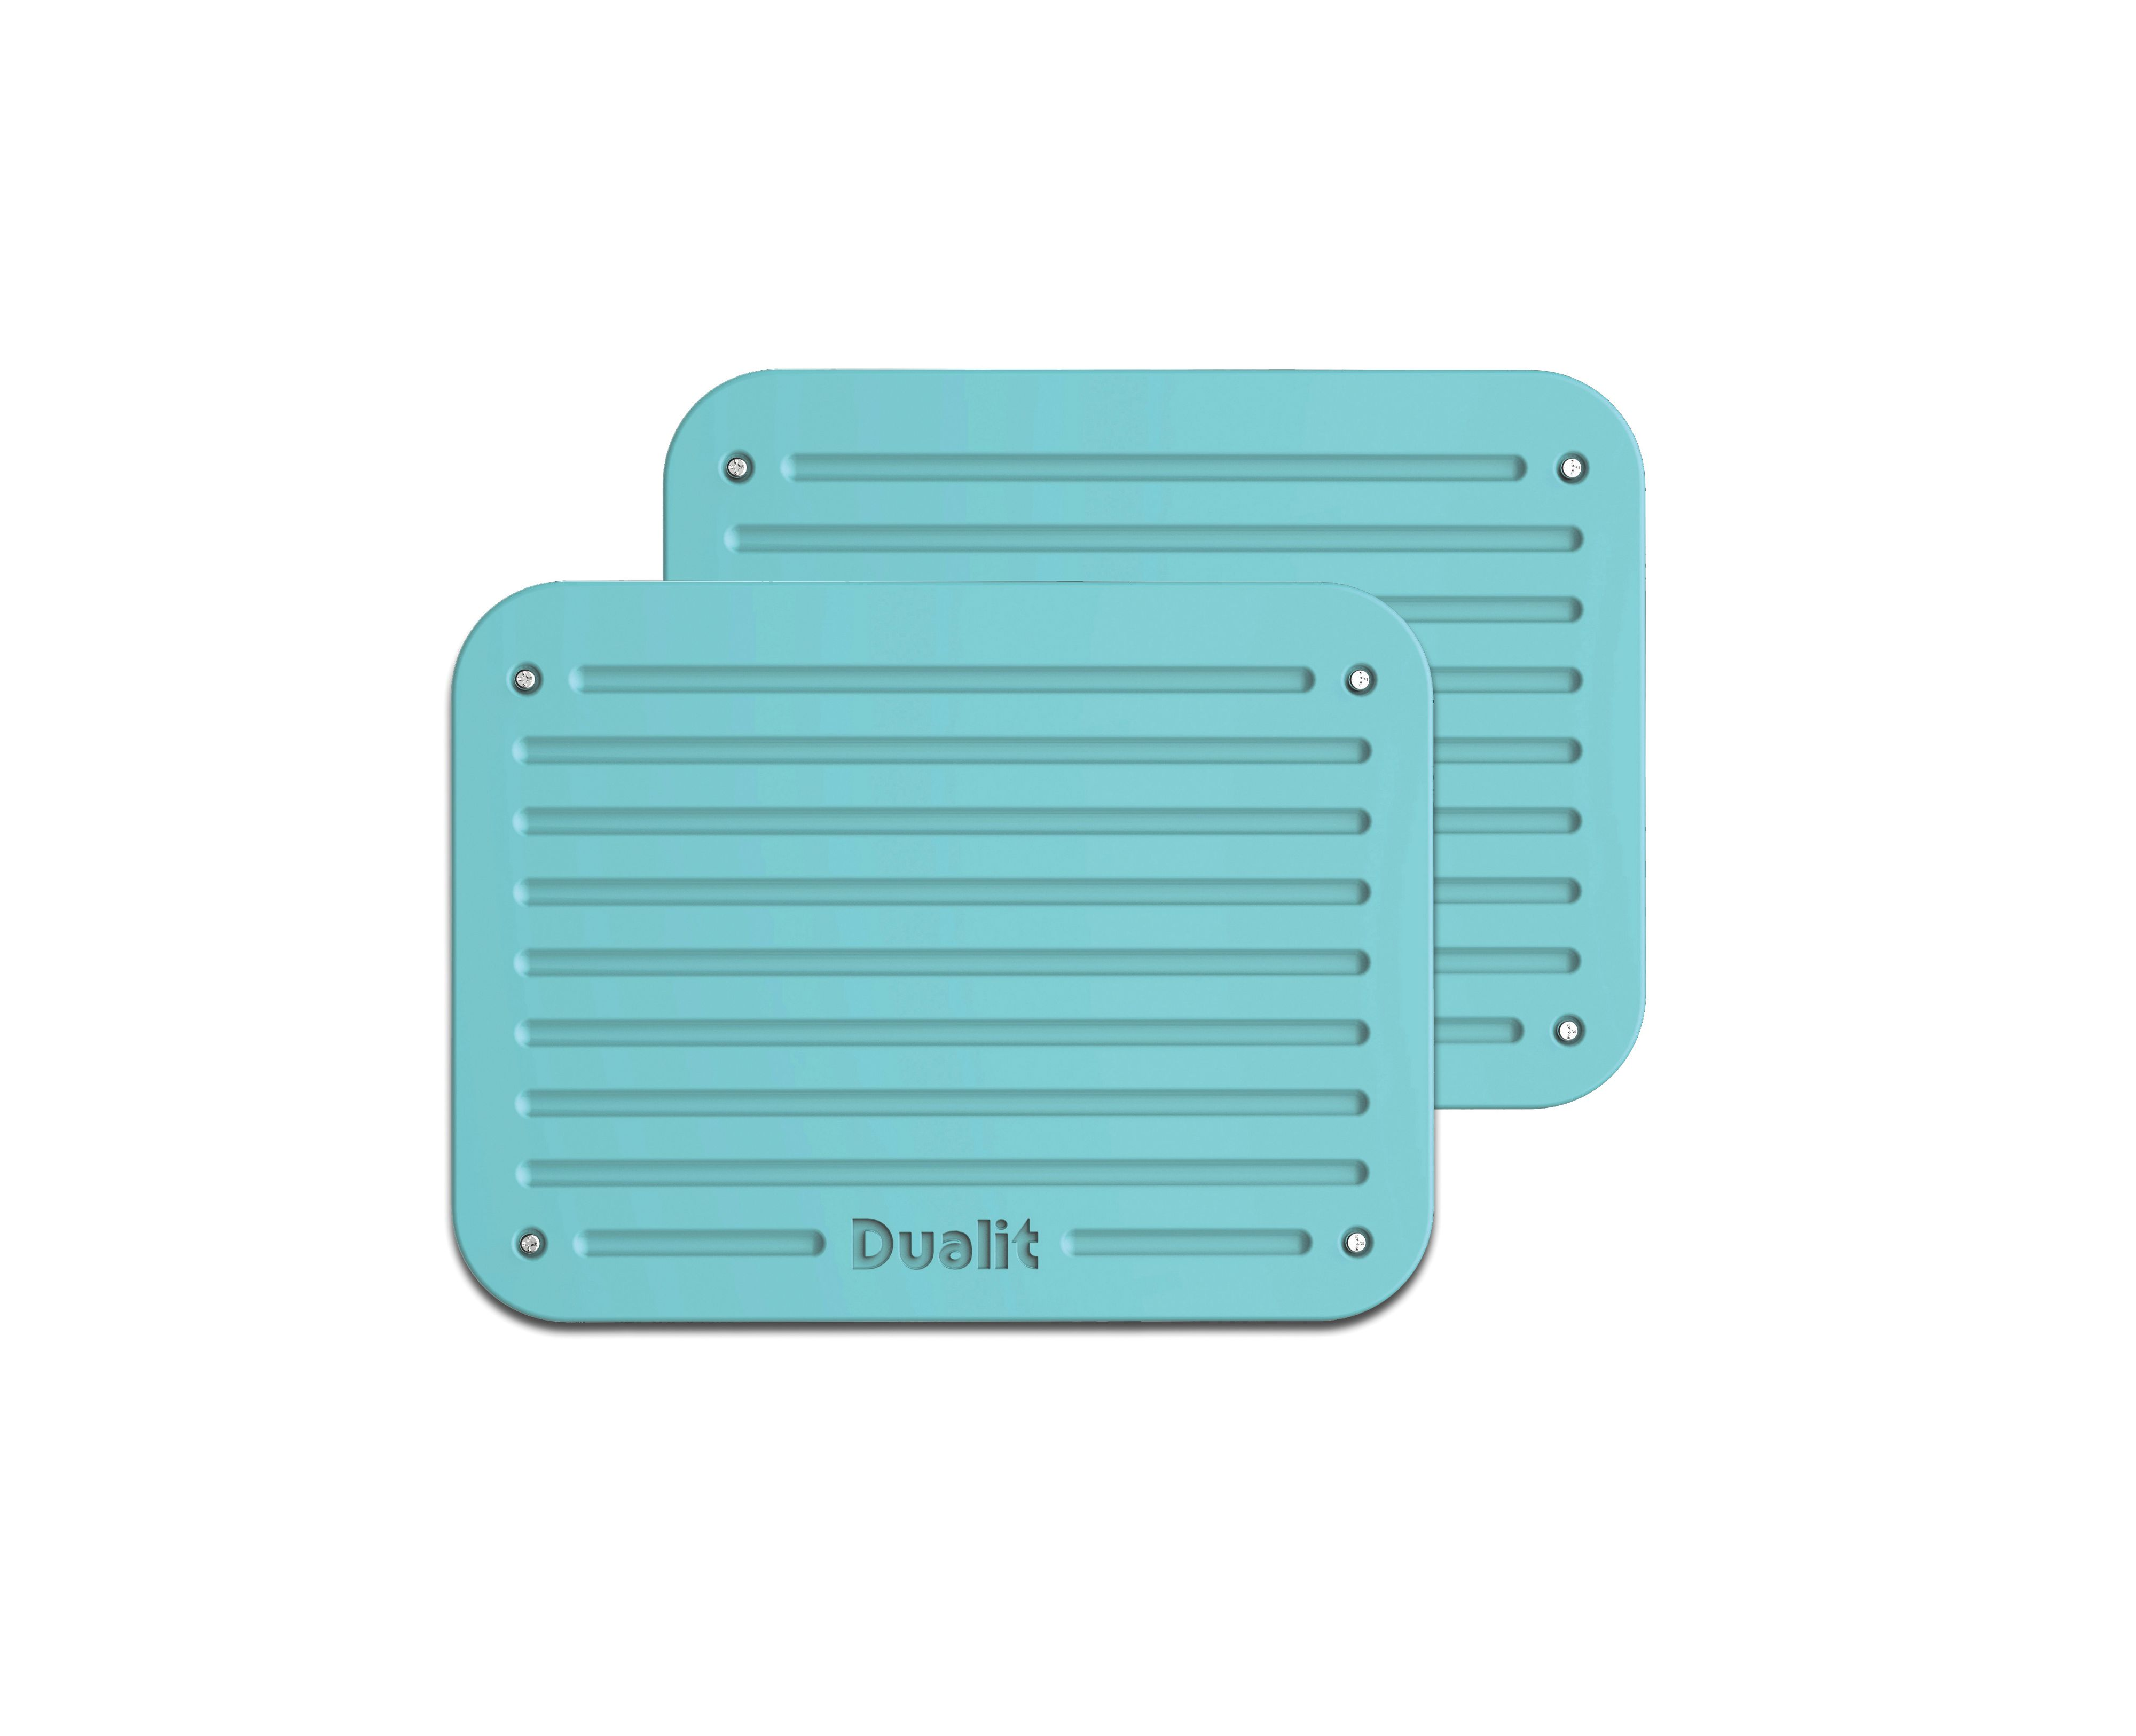 Azure blue Architect toaster panel set